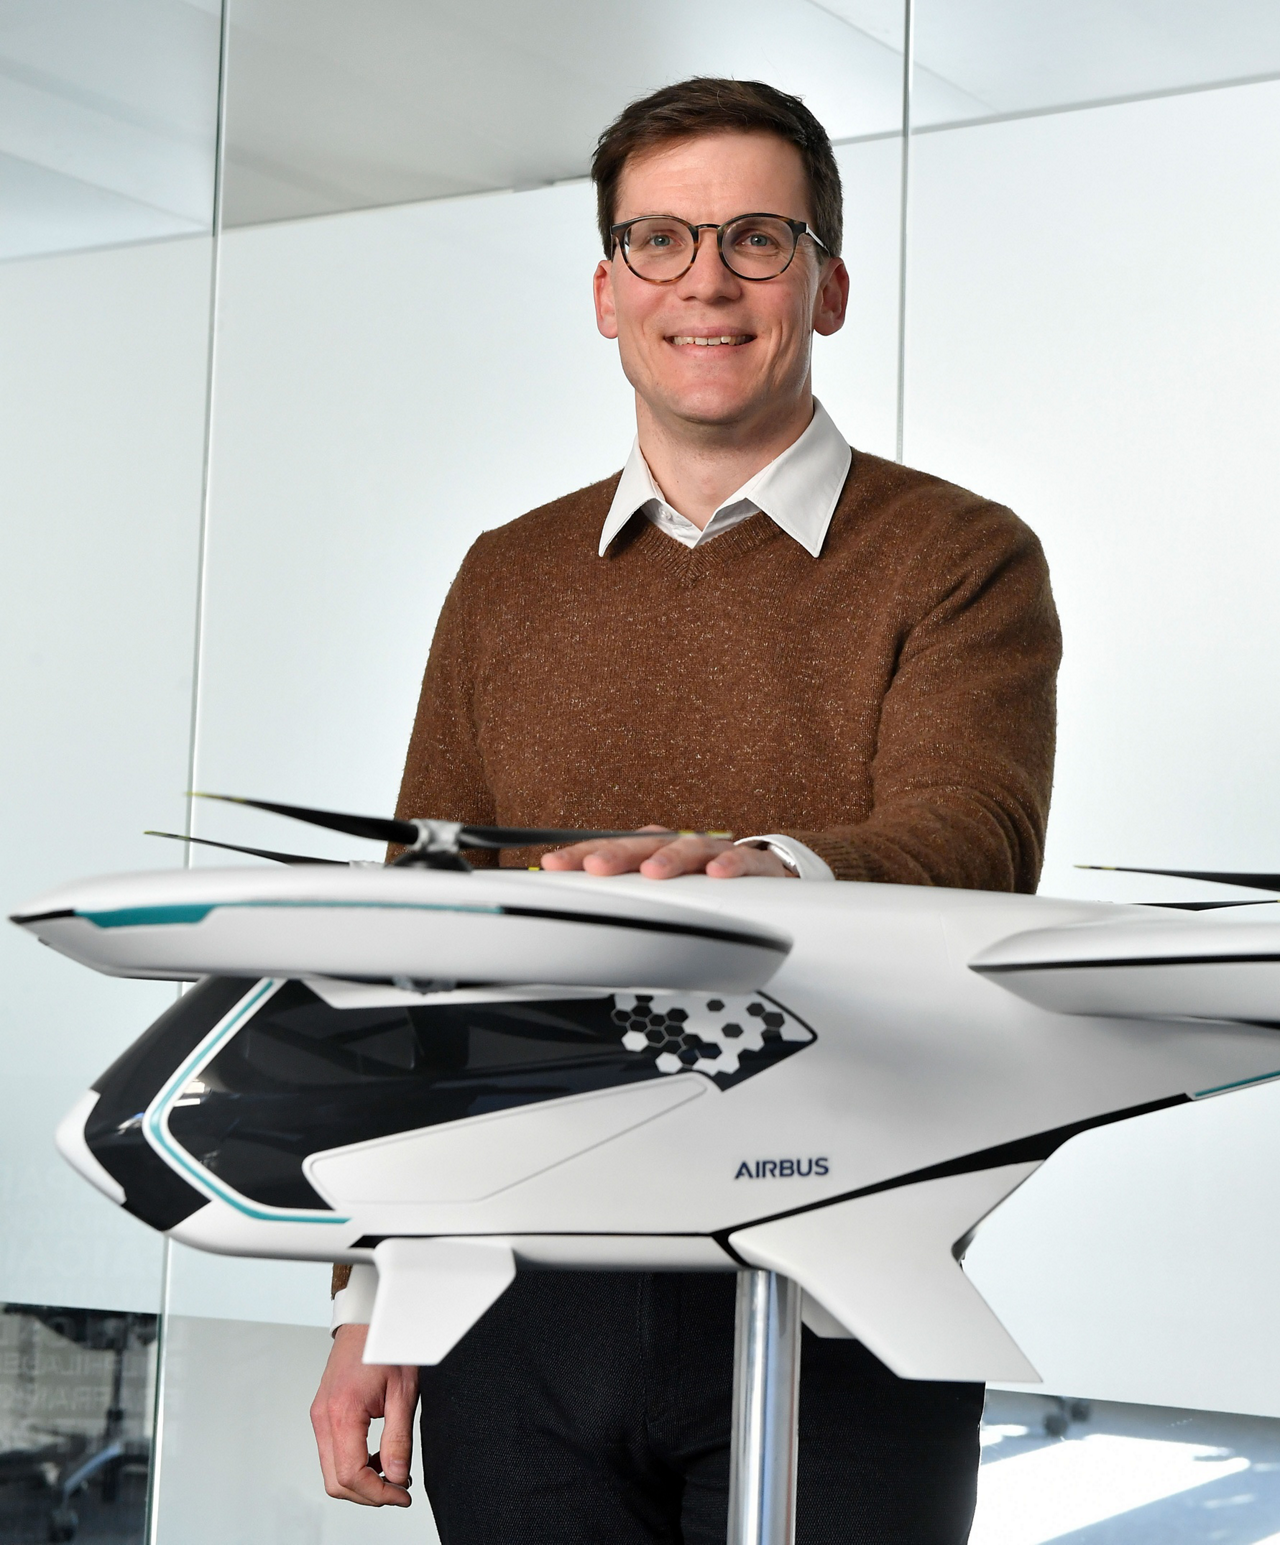 Dr. Markus May is the Managing Director at Airbus Urban Mobility GmbH